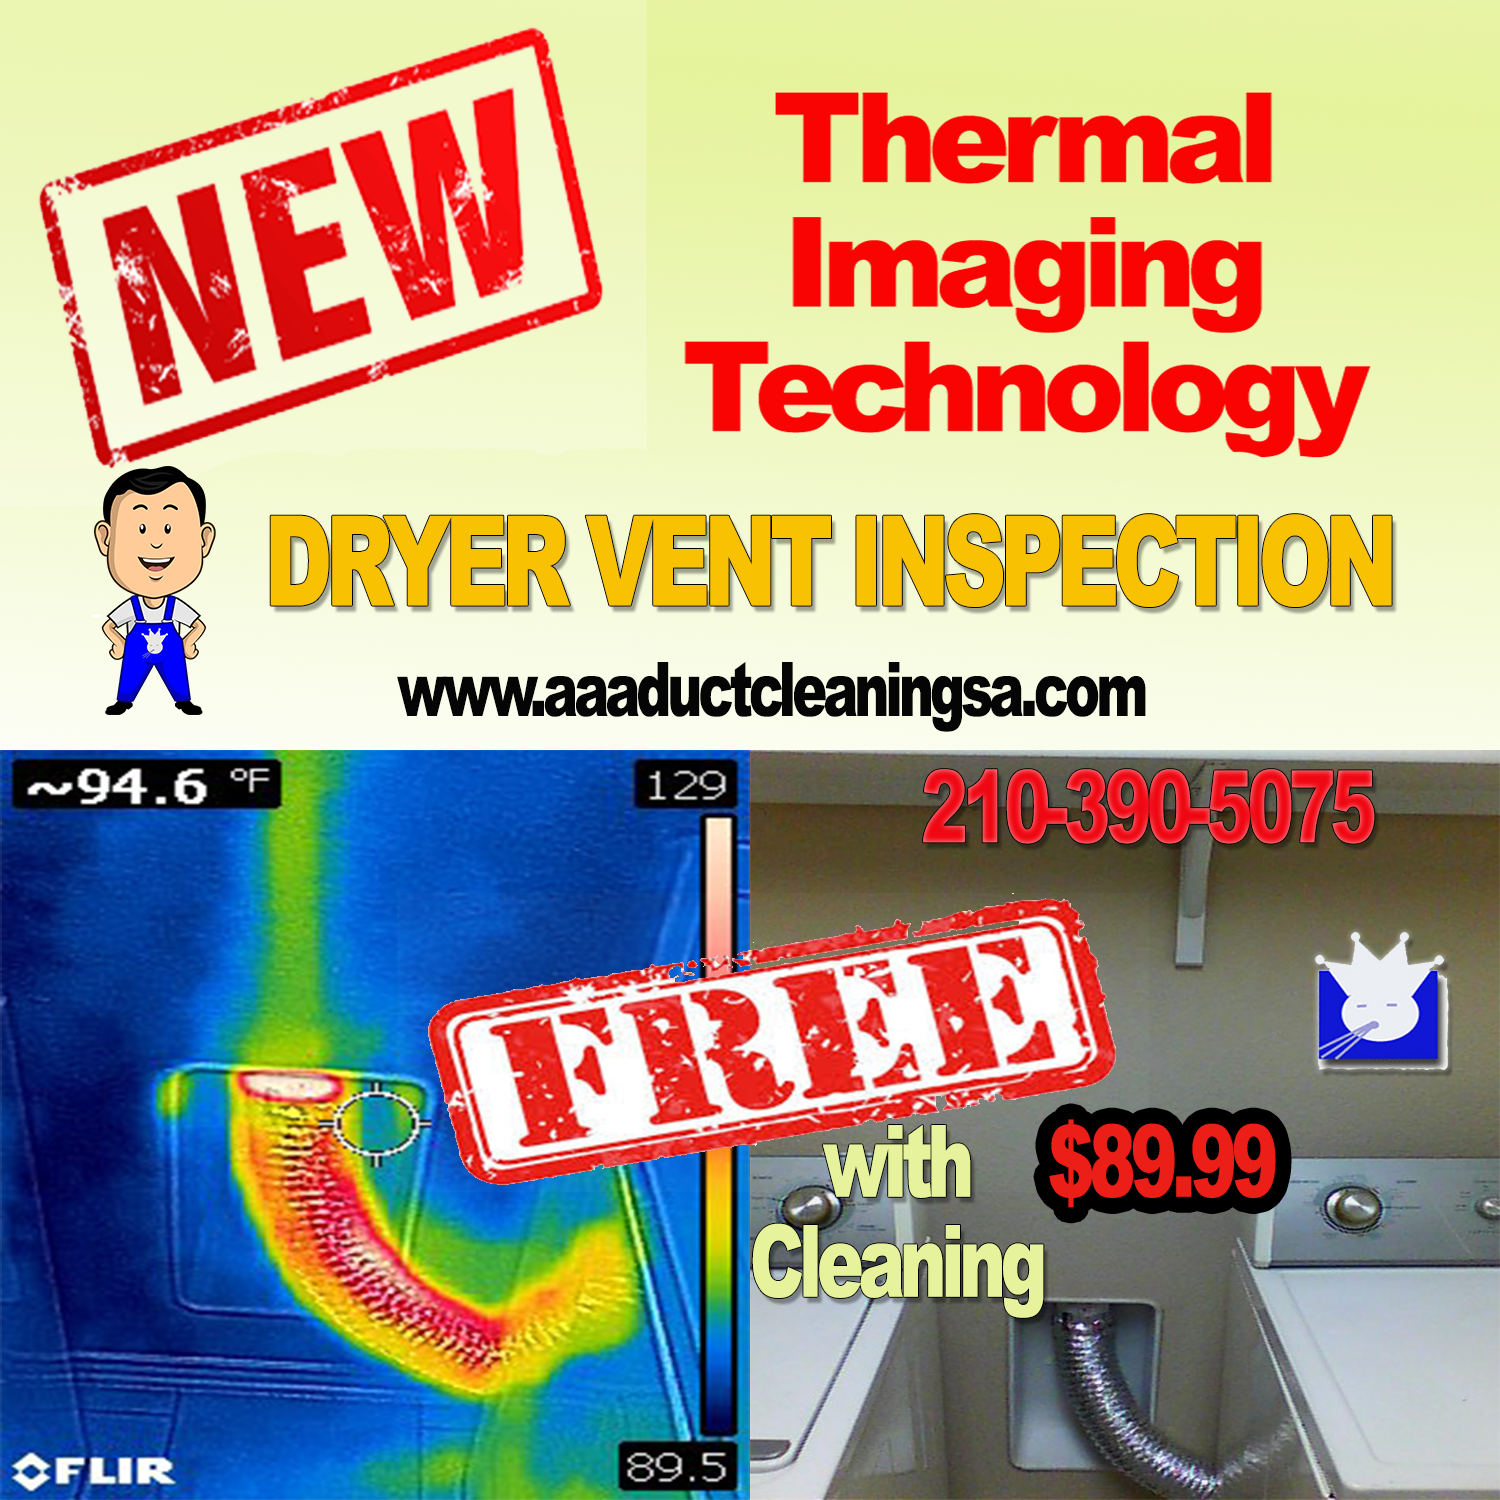 AAA Duct Cleaning provides dryer vent duct inspections and dryer vent cleaning services San Antonio for 89.99. Our dryer vent cleaning service provides customers with free thermal imaging of their dryer vent San Antonio. Dryer vent thermal imaging helps customers and technicians better understand what is going on with their dryer vent and how the duct is exhausting heat.San Antonio if your dryer vent is showing signs of collecting too much let contact AAA Duct Cleaning at 210-390-5075 to schedule your next professional dryer vent cleaning.